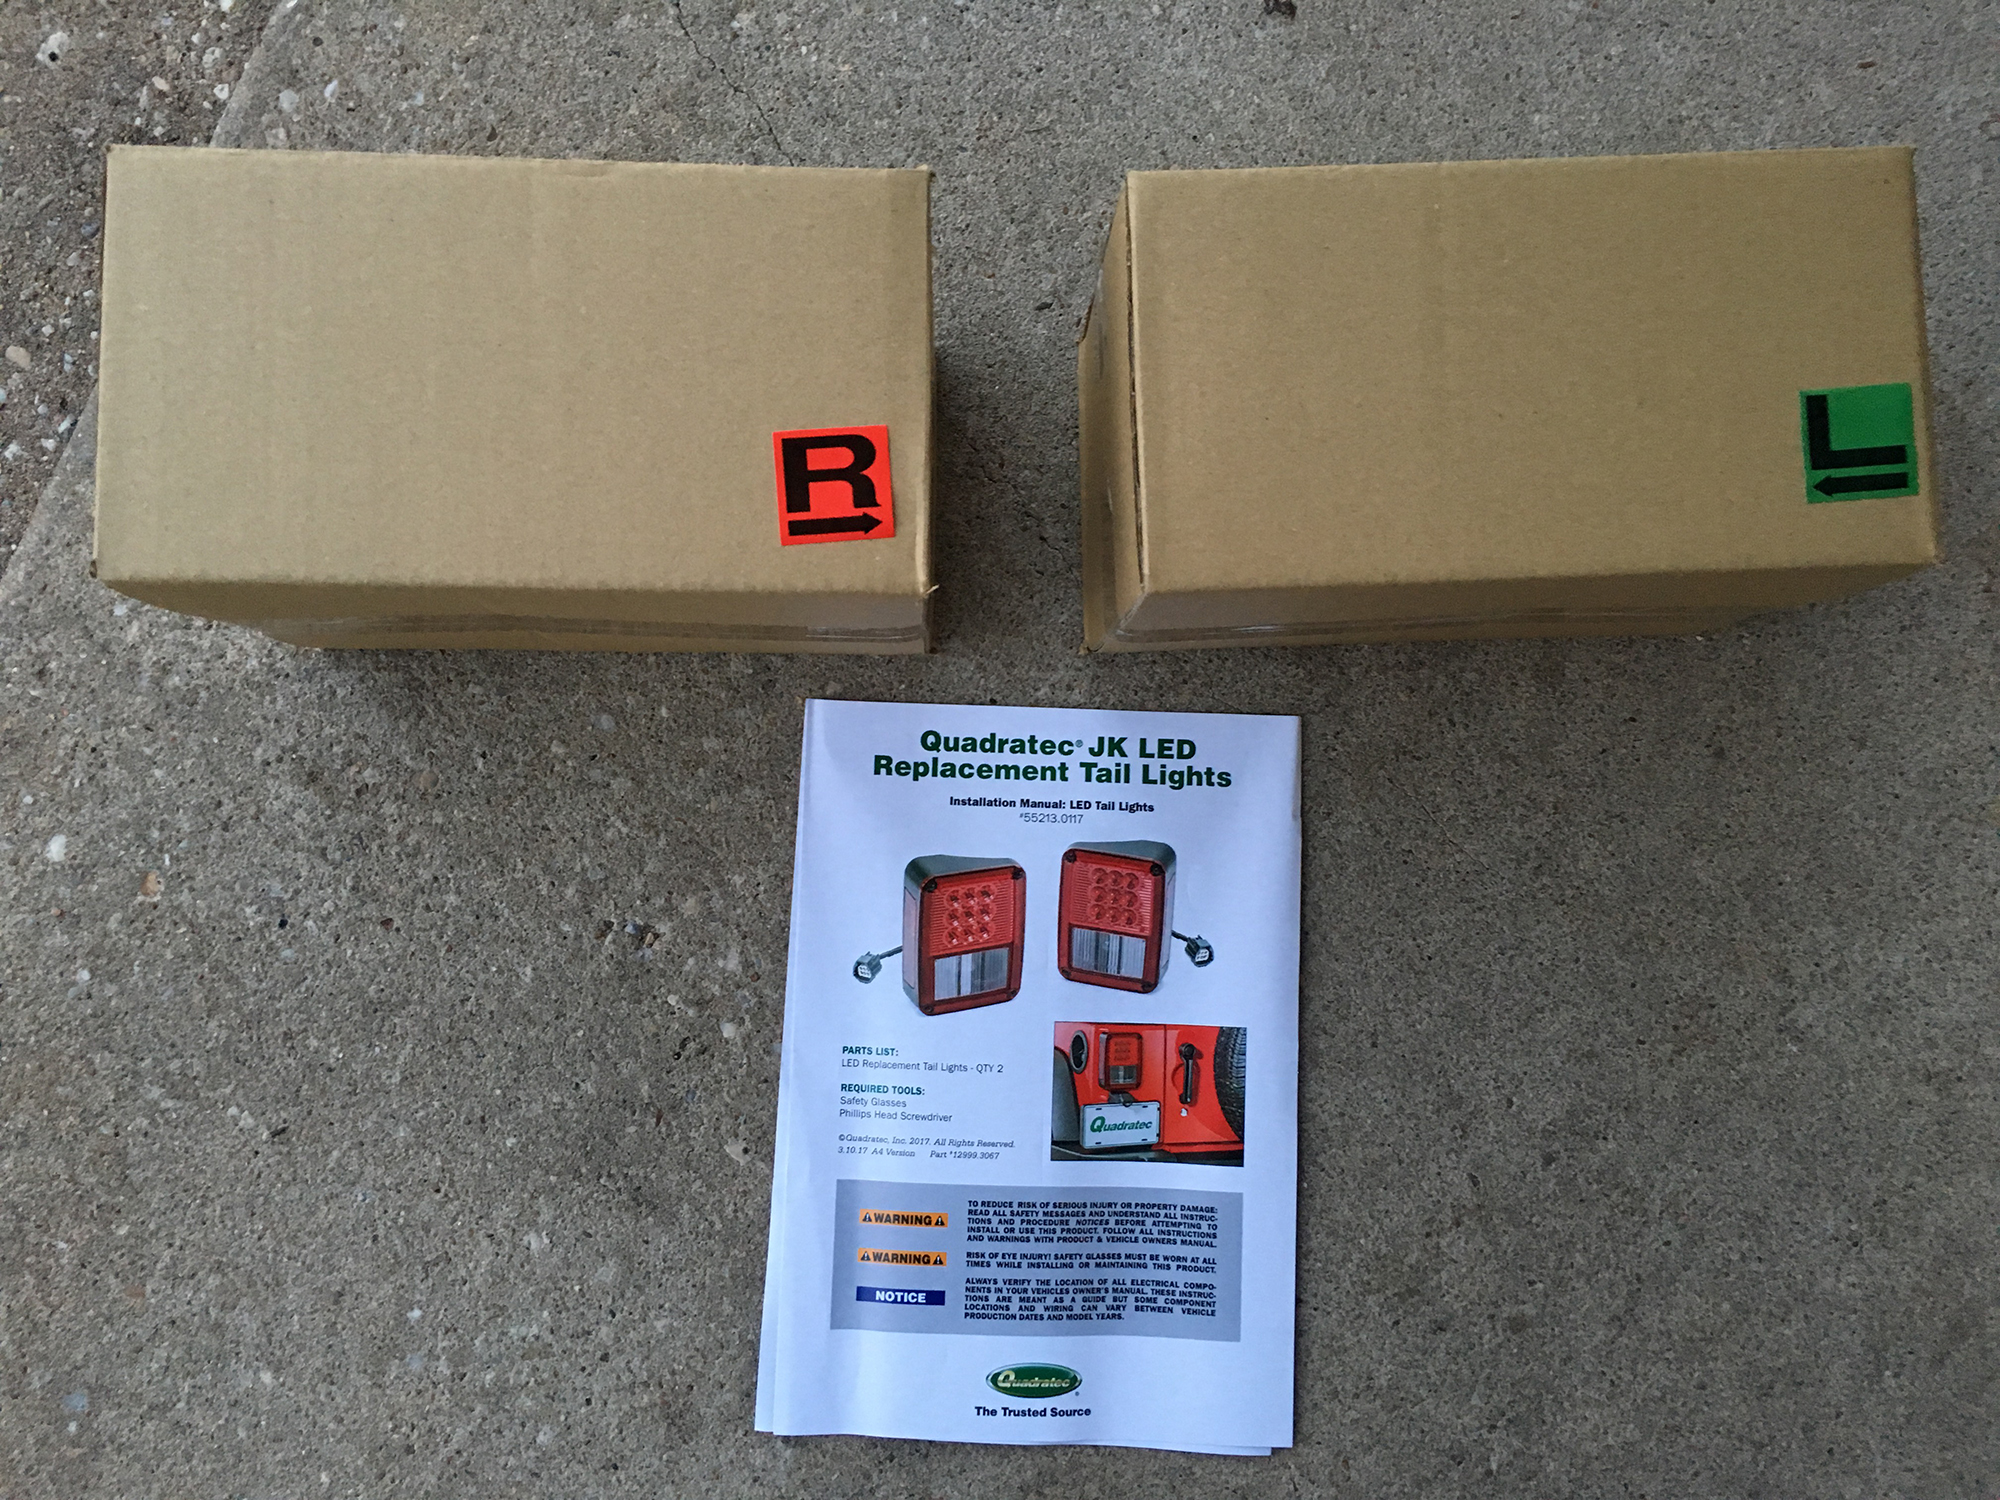 hight resolution of now as far as installation goes quadratec s led tail lamps arrive in boxes with labels indicating left and right side and include c shaped adapter